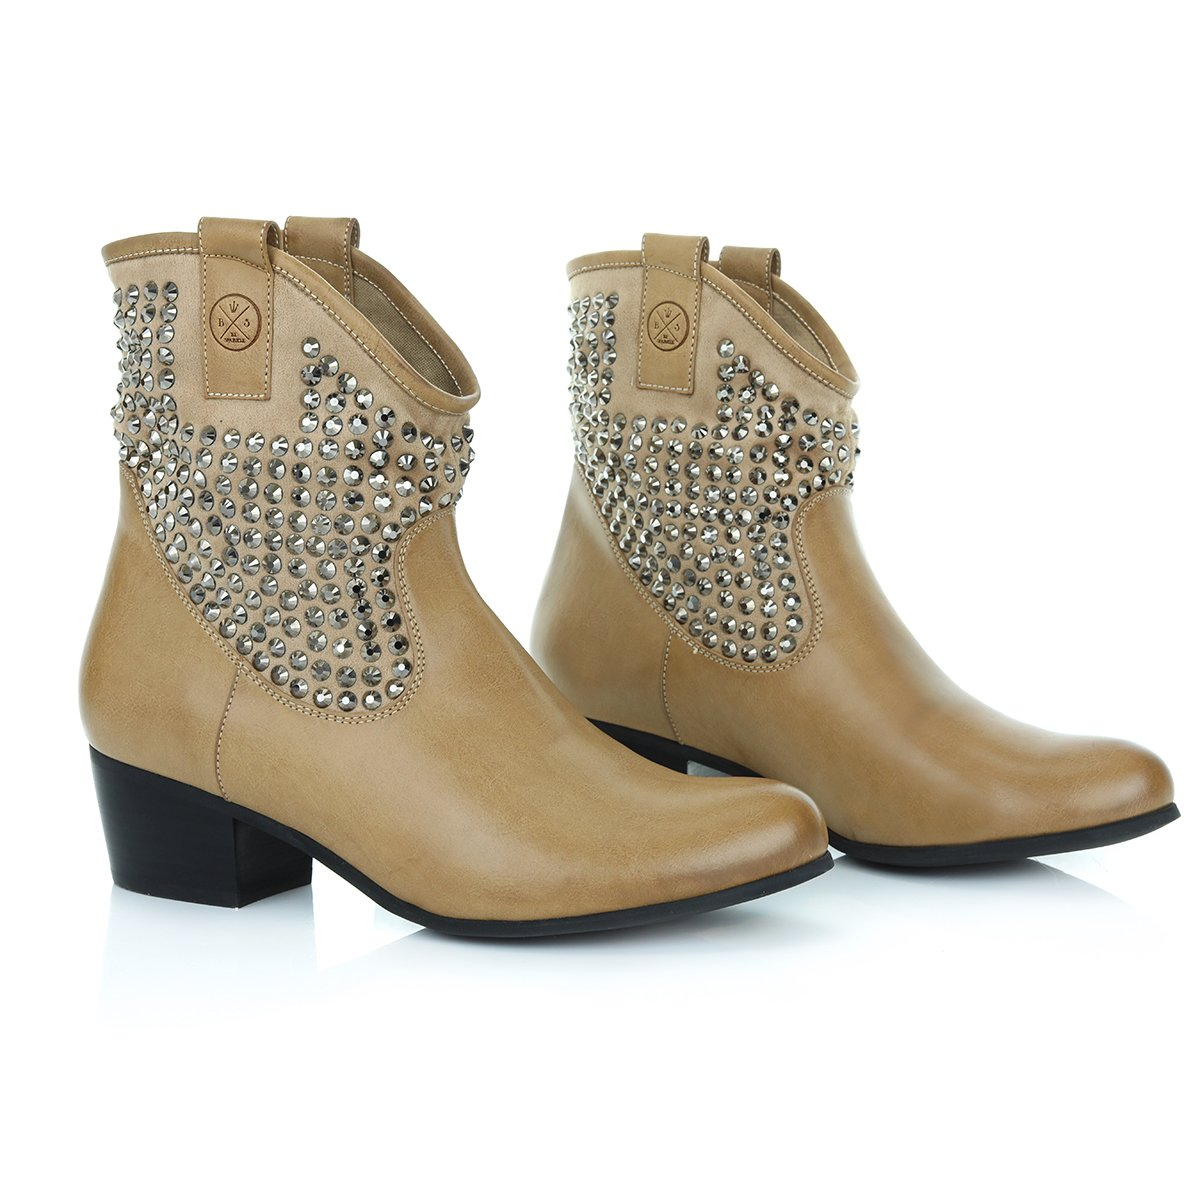 Bsparkle Ankle Boots Low Heel Suede for Girls and Women-Cowboy Style-Comfortable All Day Walking Booties by 6 B(M) US